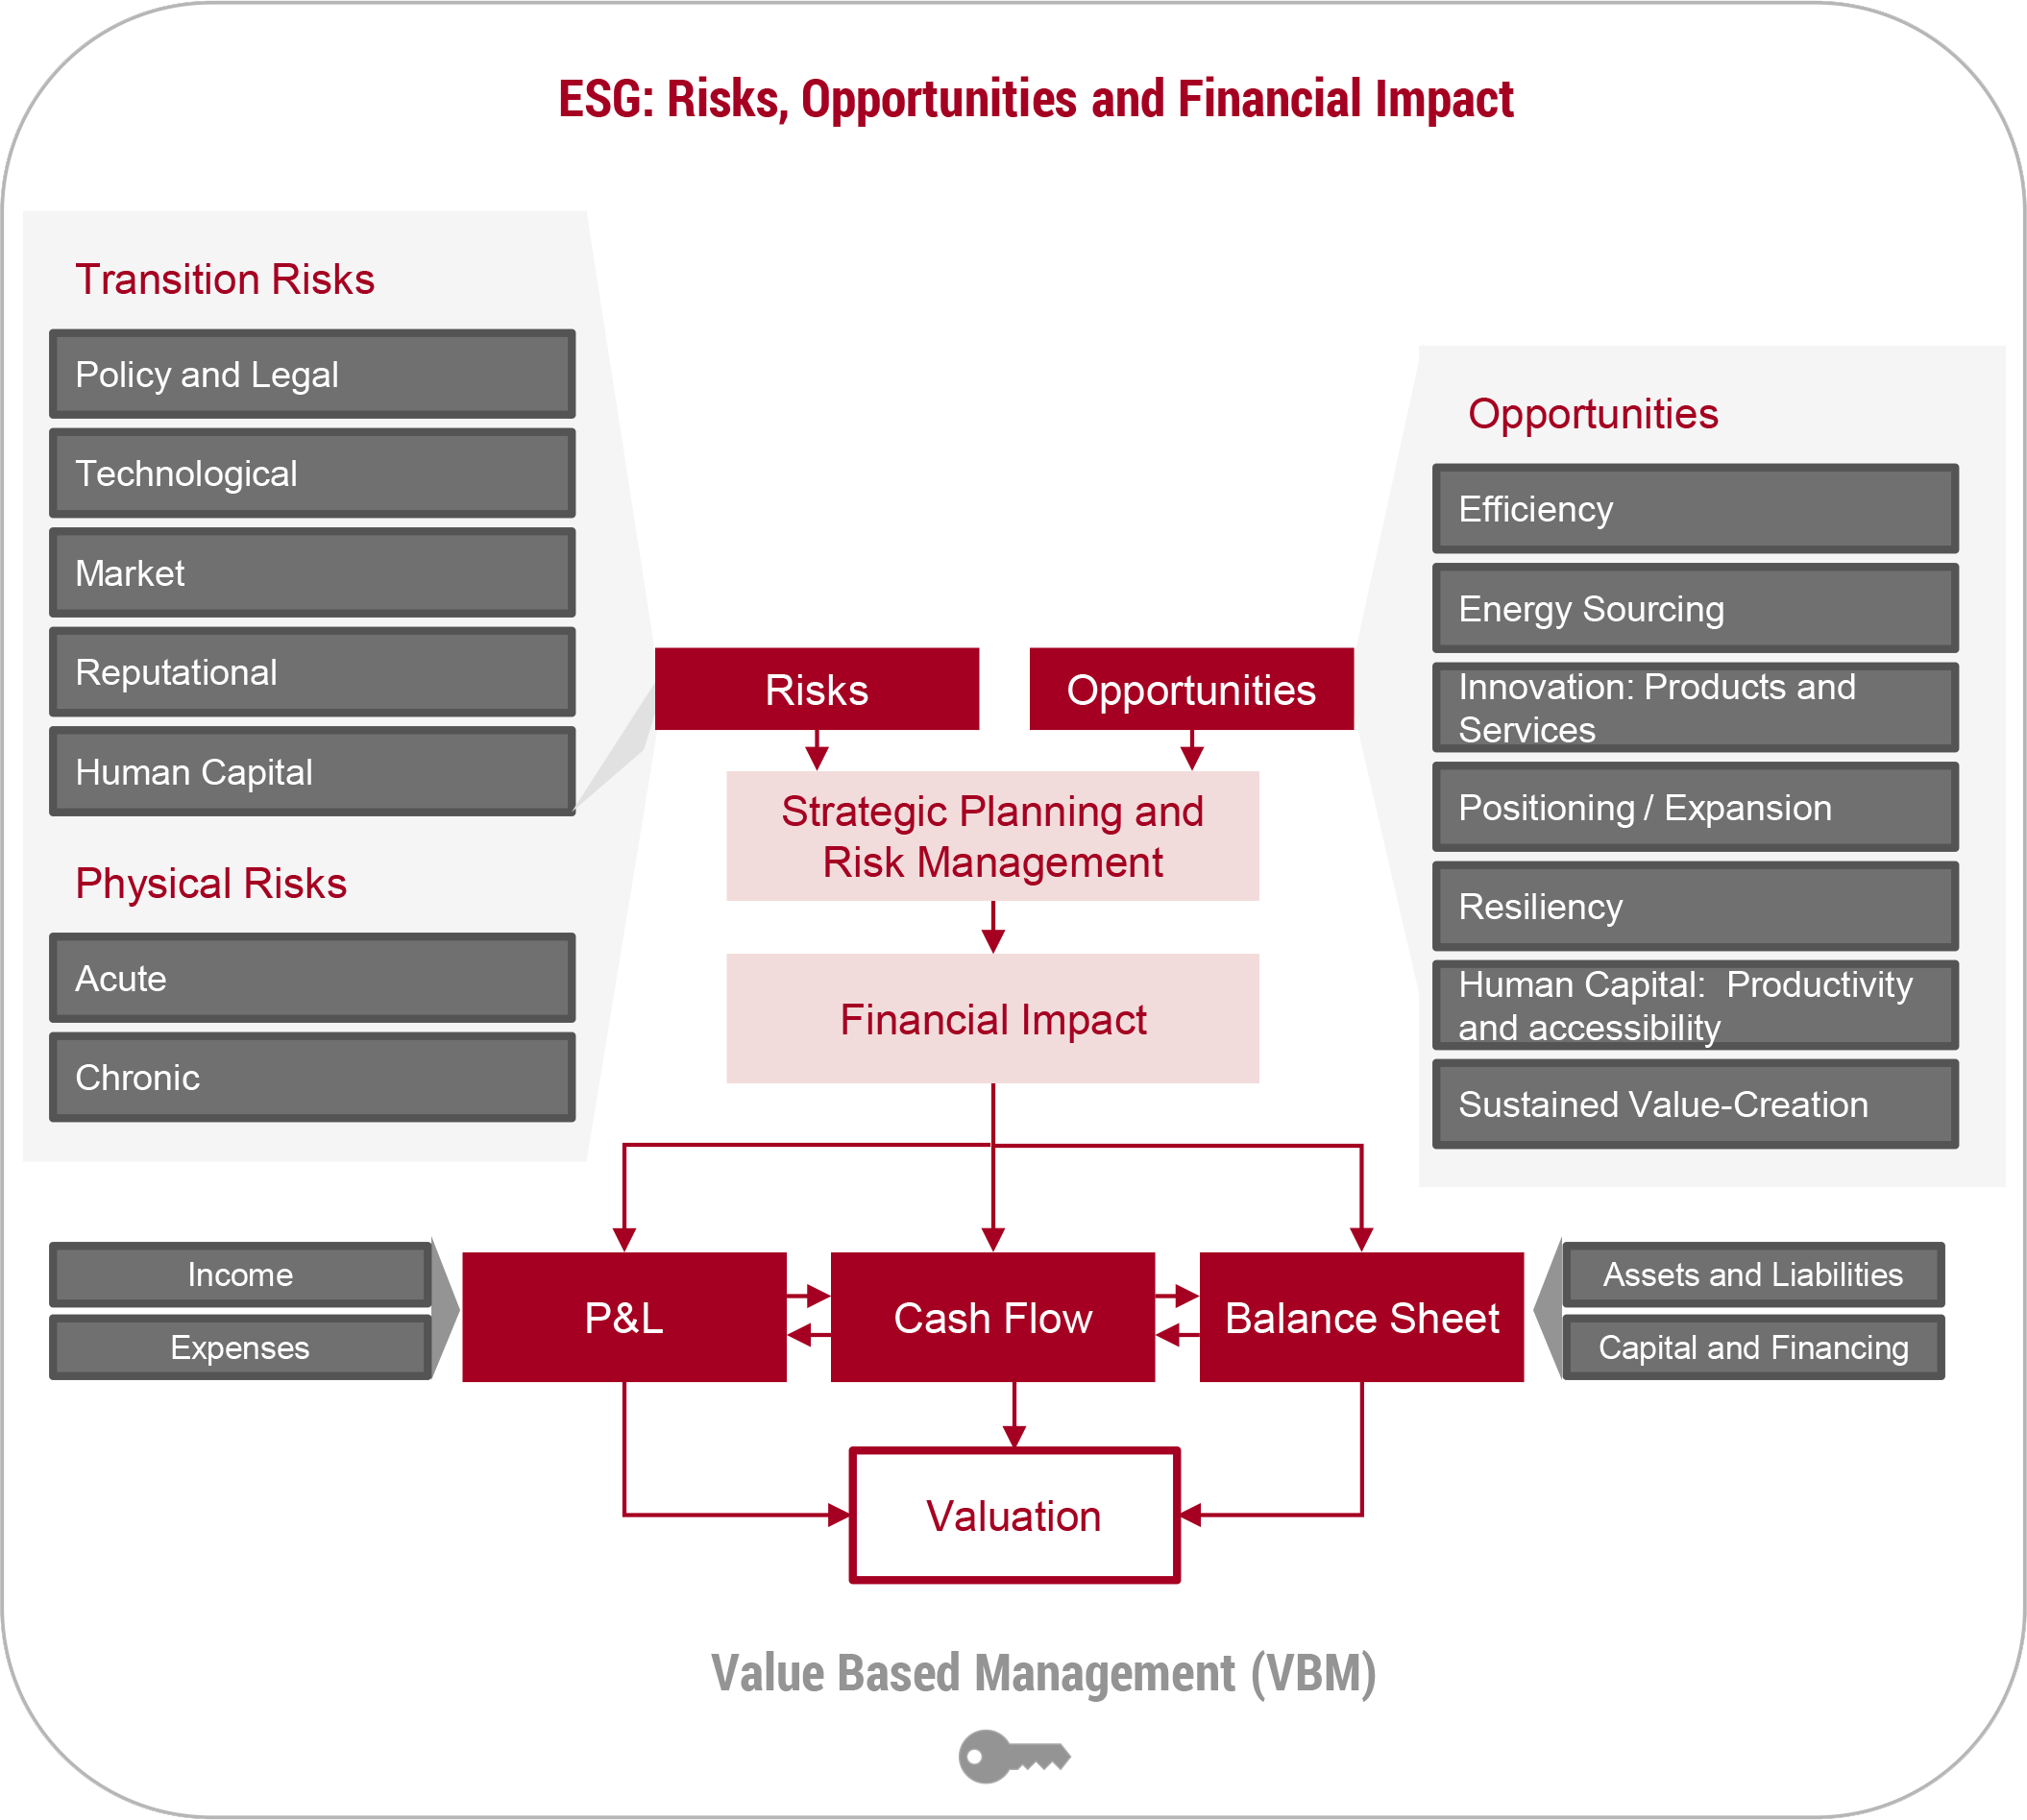 ESG Risks, Opportunities and Financial Impact Flow Chart